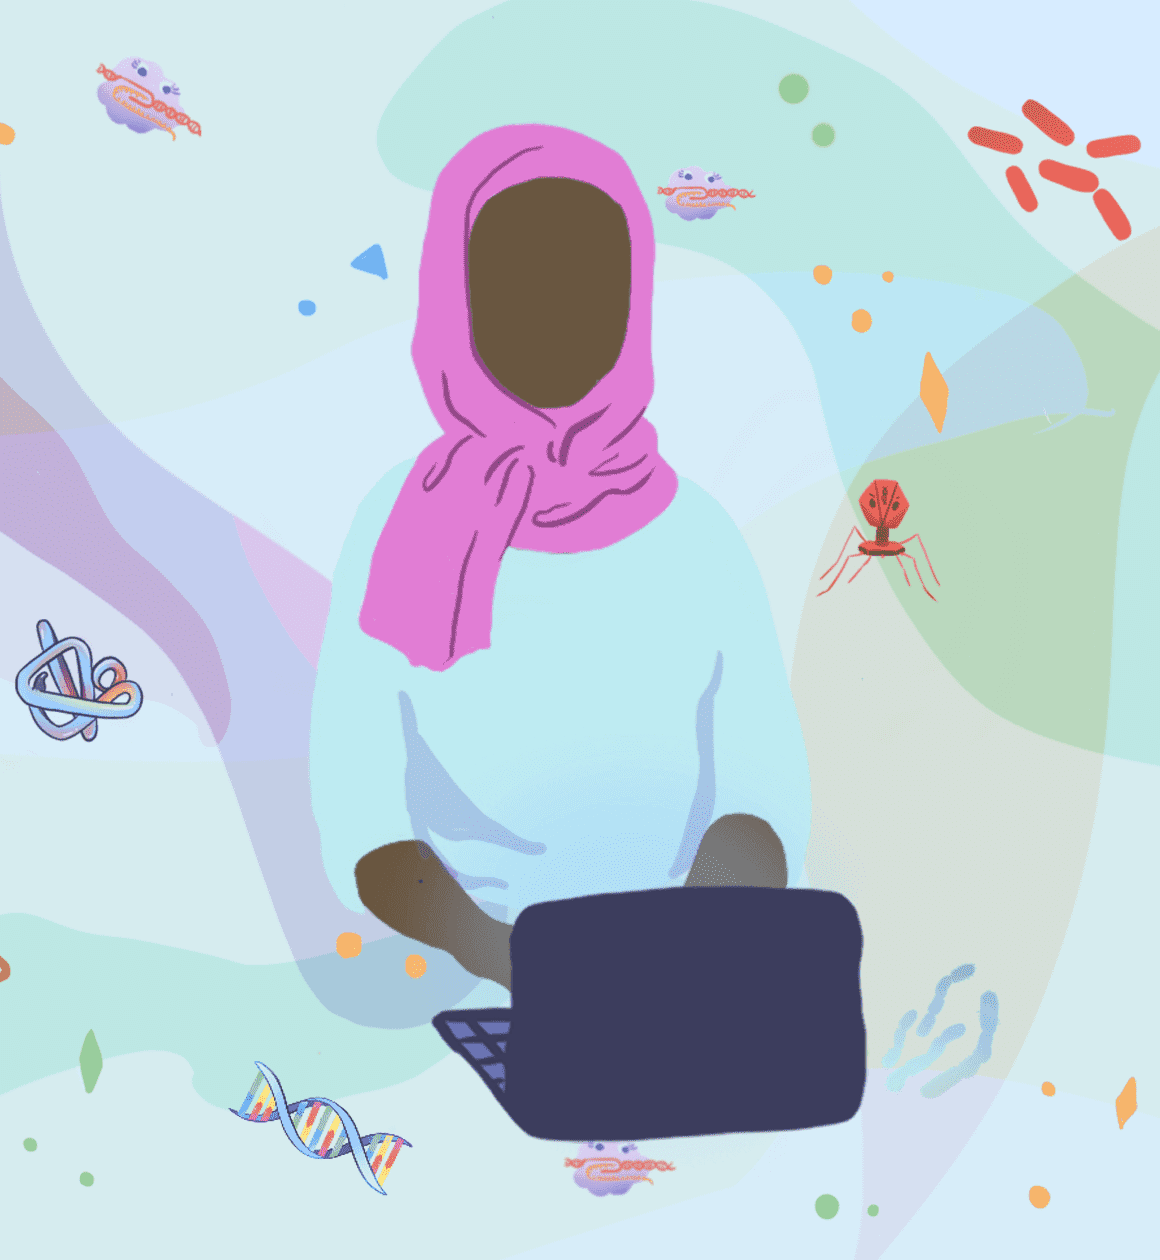 Illustration of a student wearing a headscarf and working on a laptop